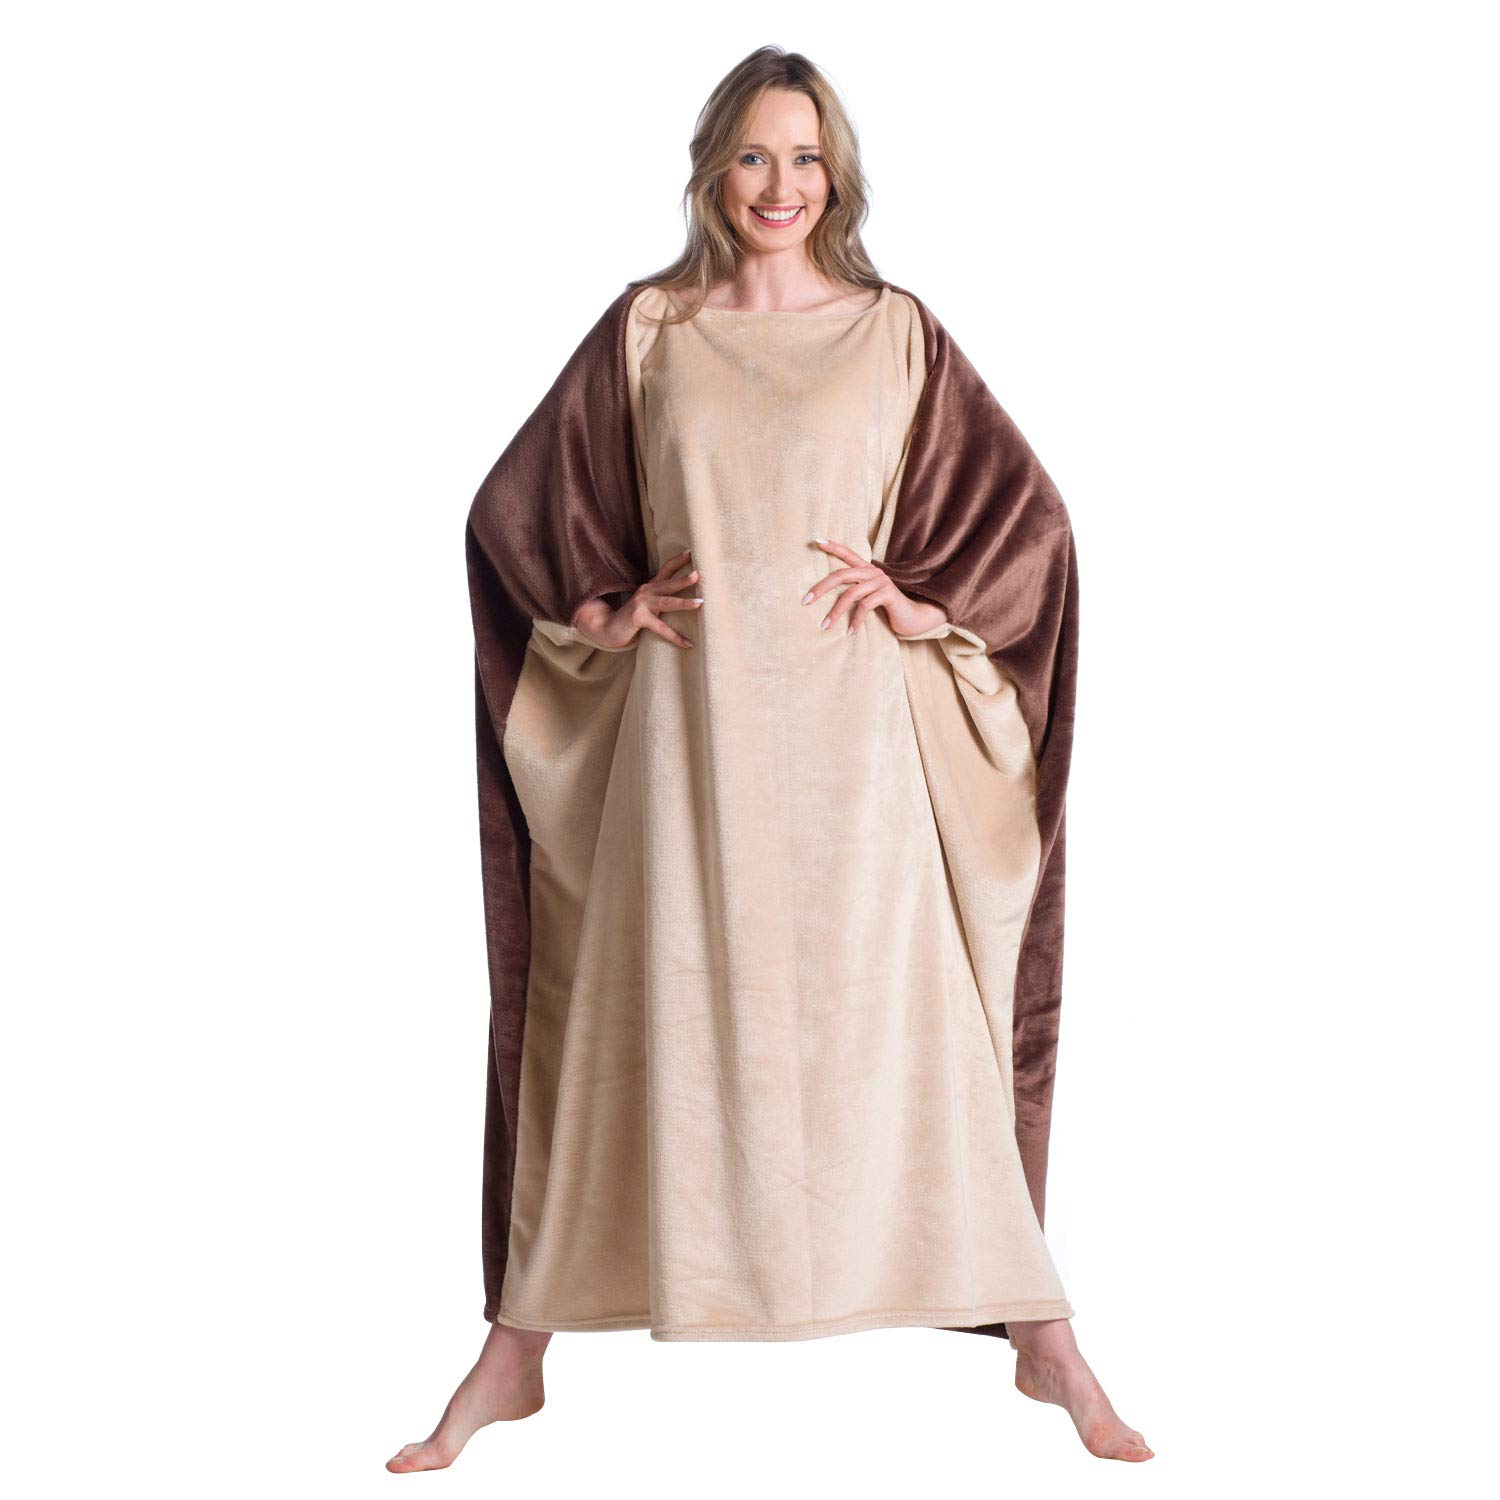 Men Fun Gifts for Christmas and Birthday Women Kanguru Wearable Blanket with Sleeves for Adult